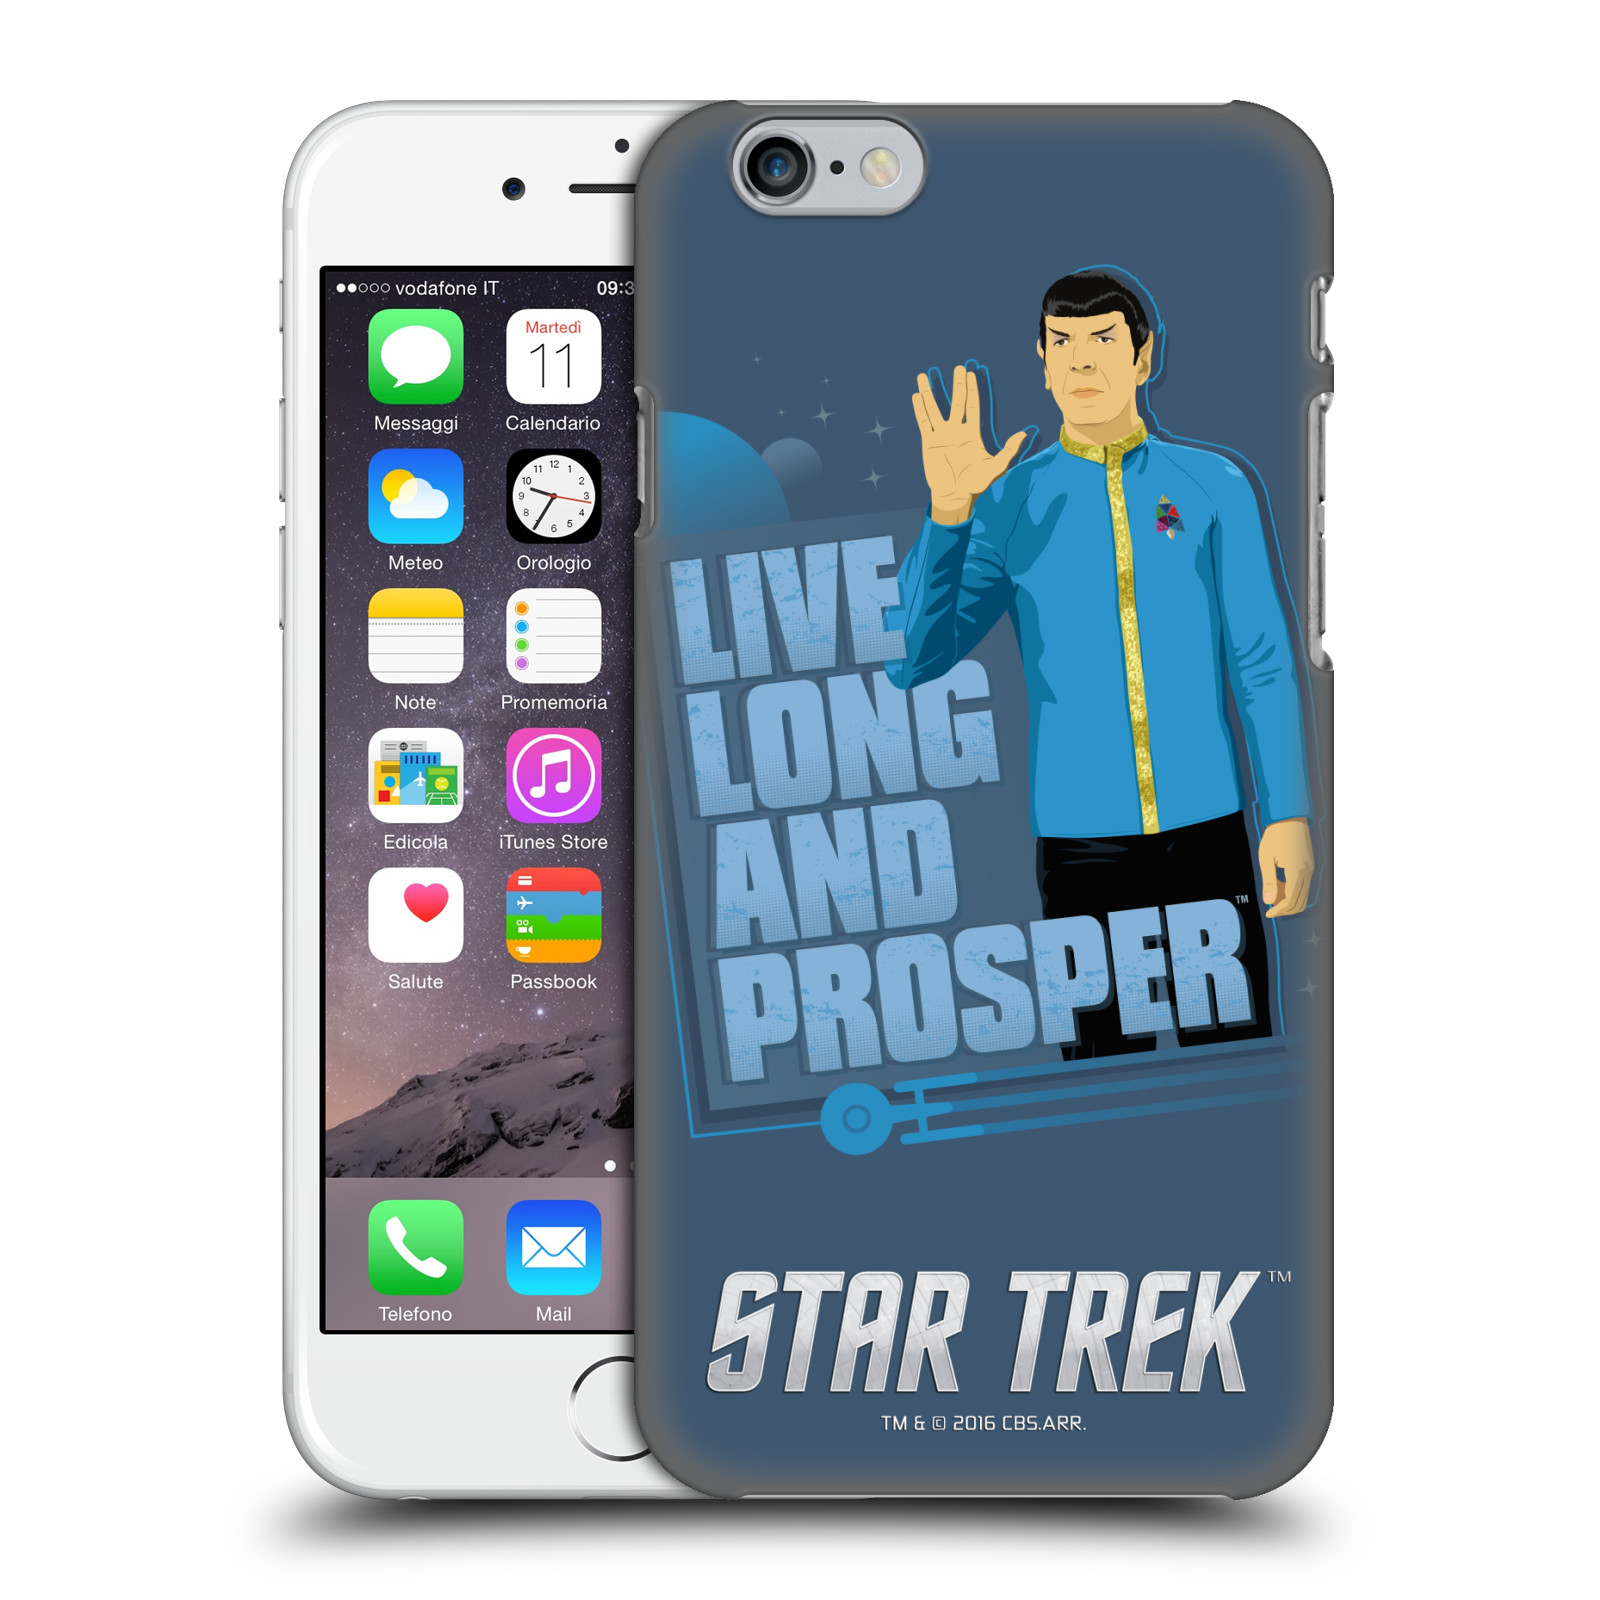 Star Trek Iconic Characters TOS-Spock